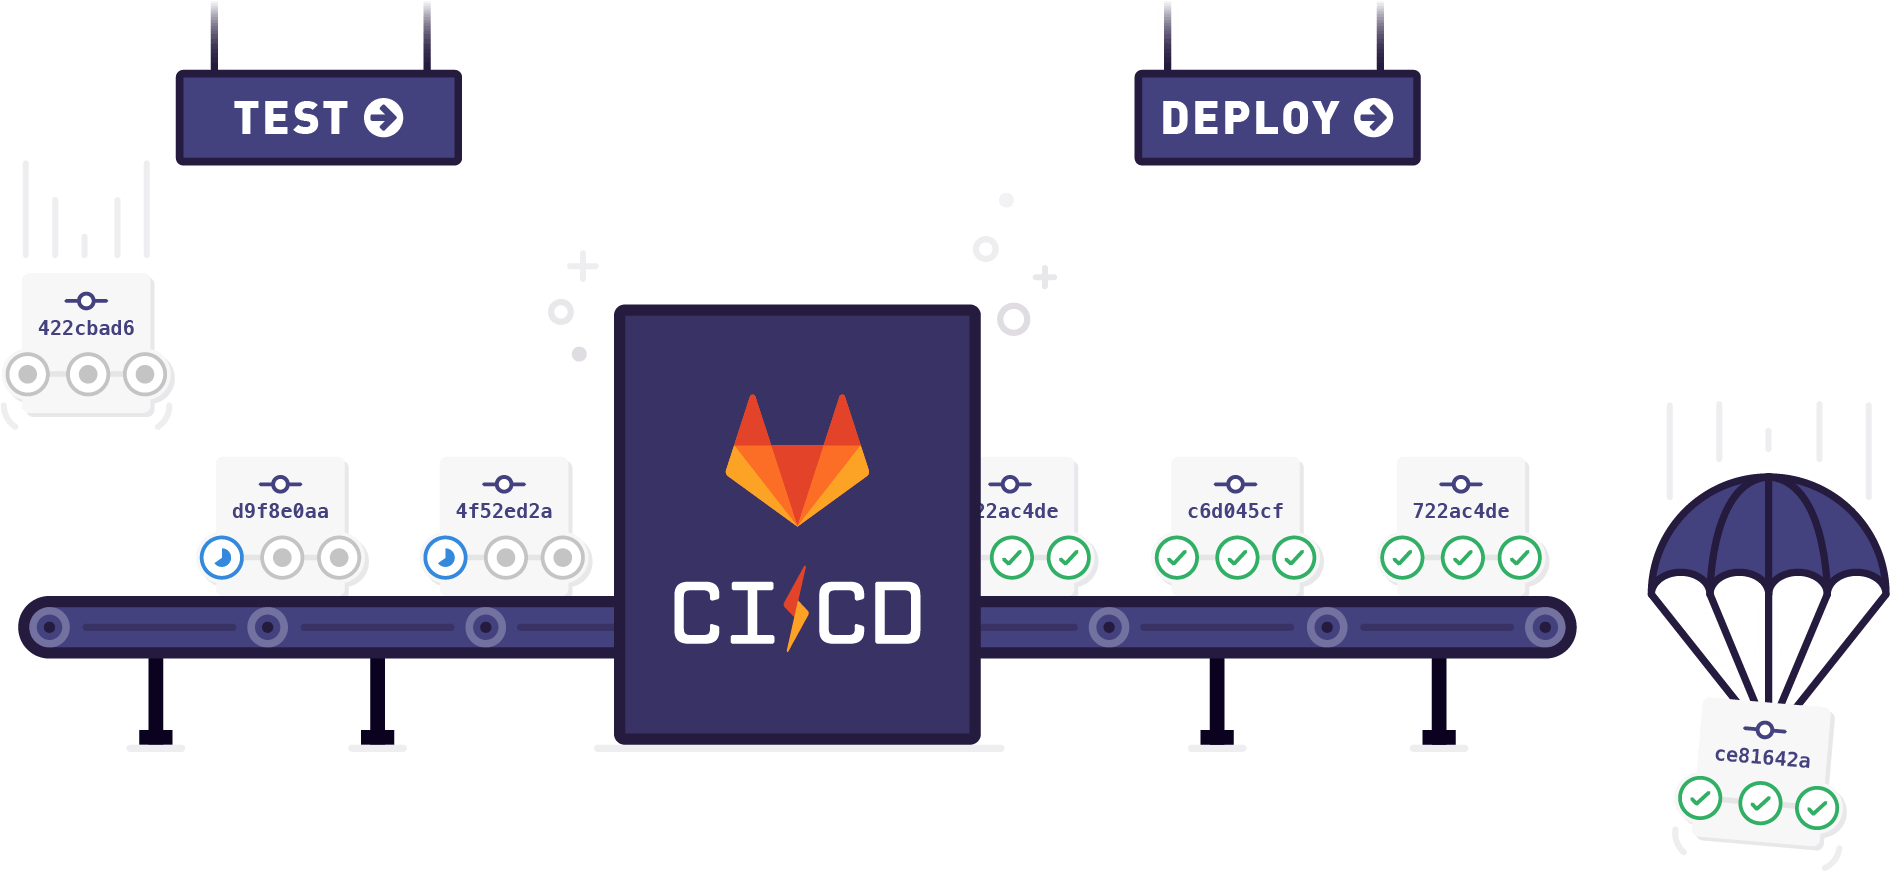 Setting Up CI of Flexibility in GitLab